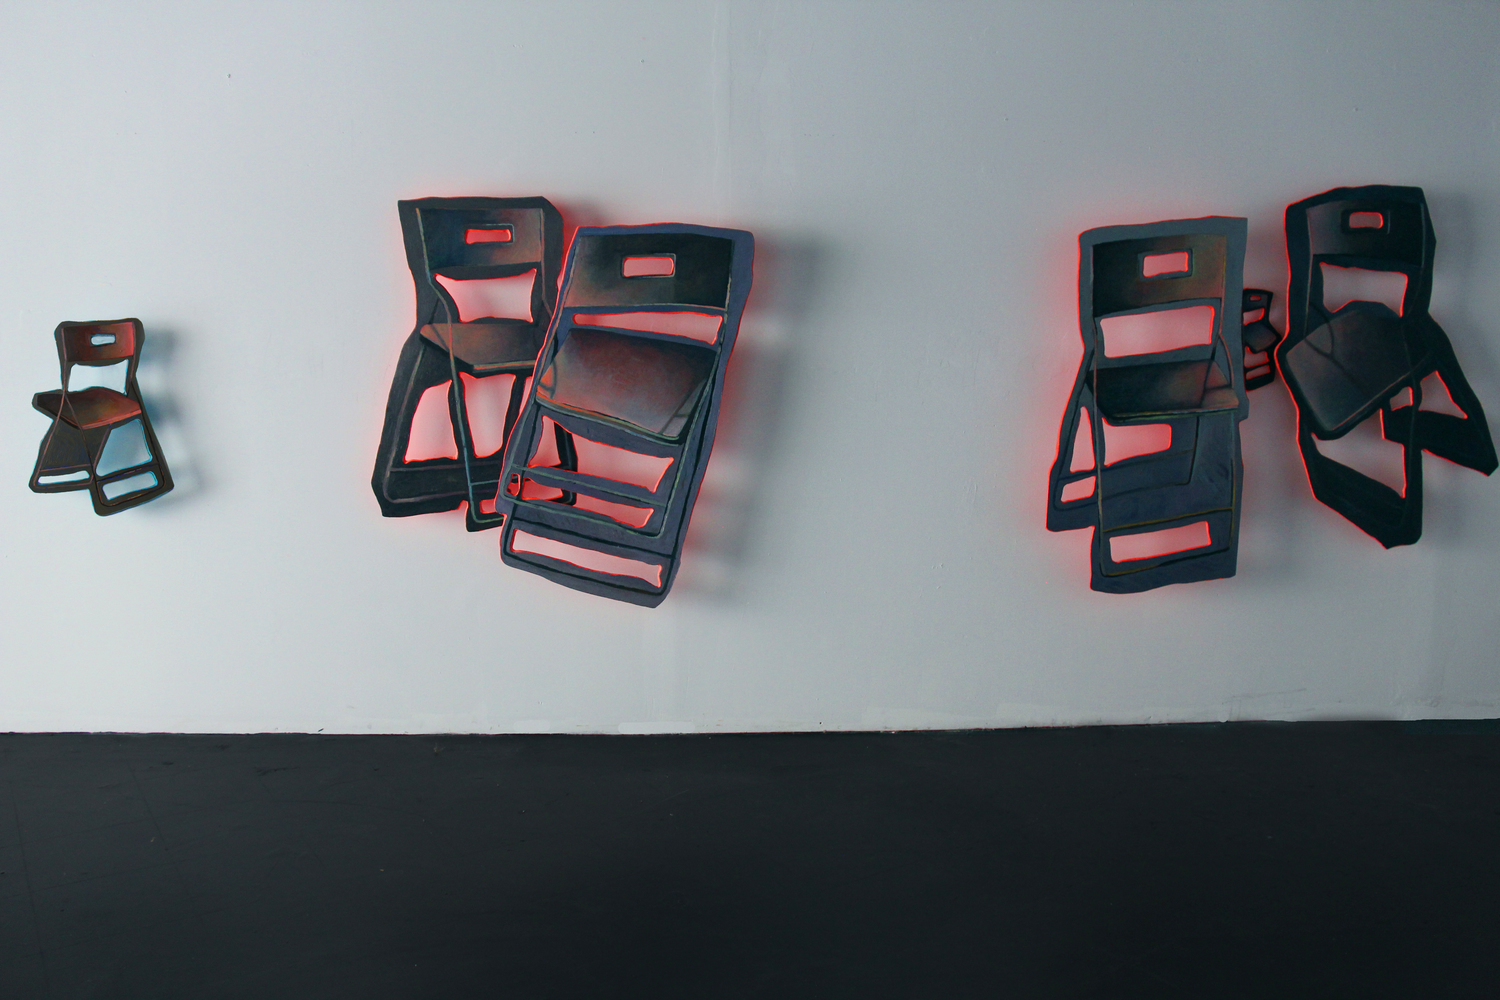 Lonely Chairs in a Dark Room